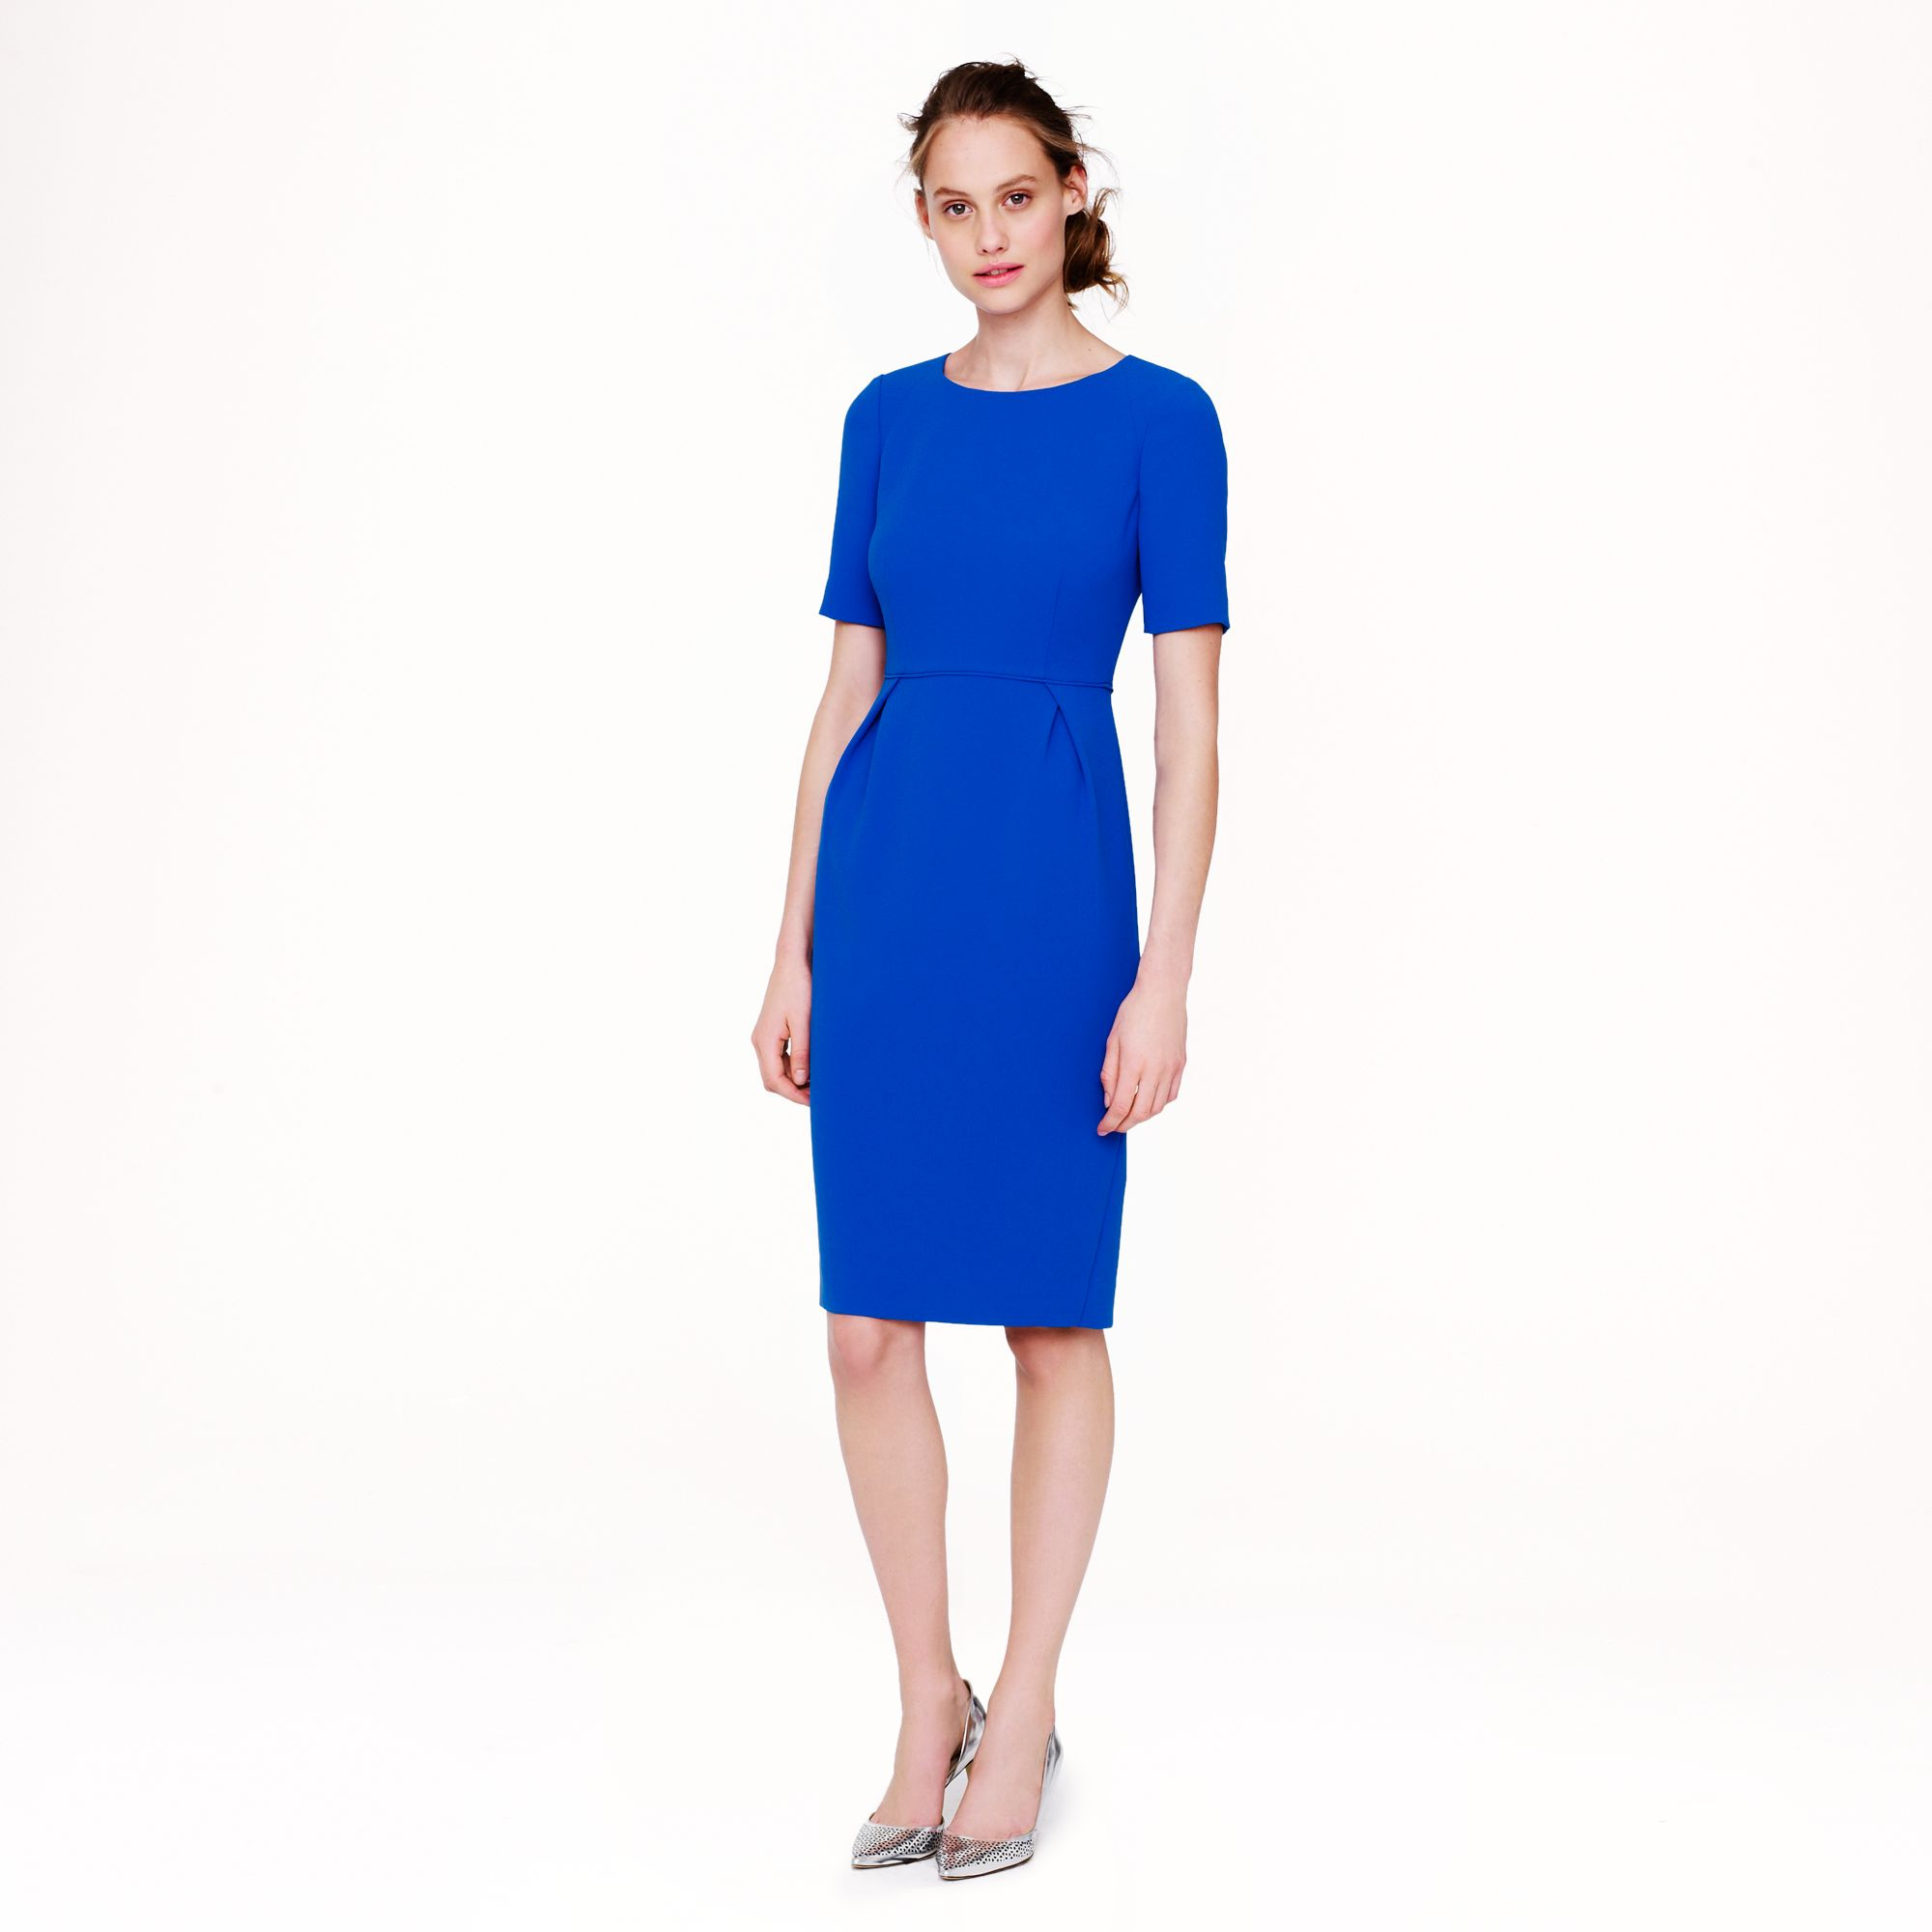 J Crew Tall Crepe Short Sleeve Dress In Blue Blue Grotto